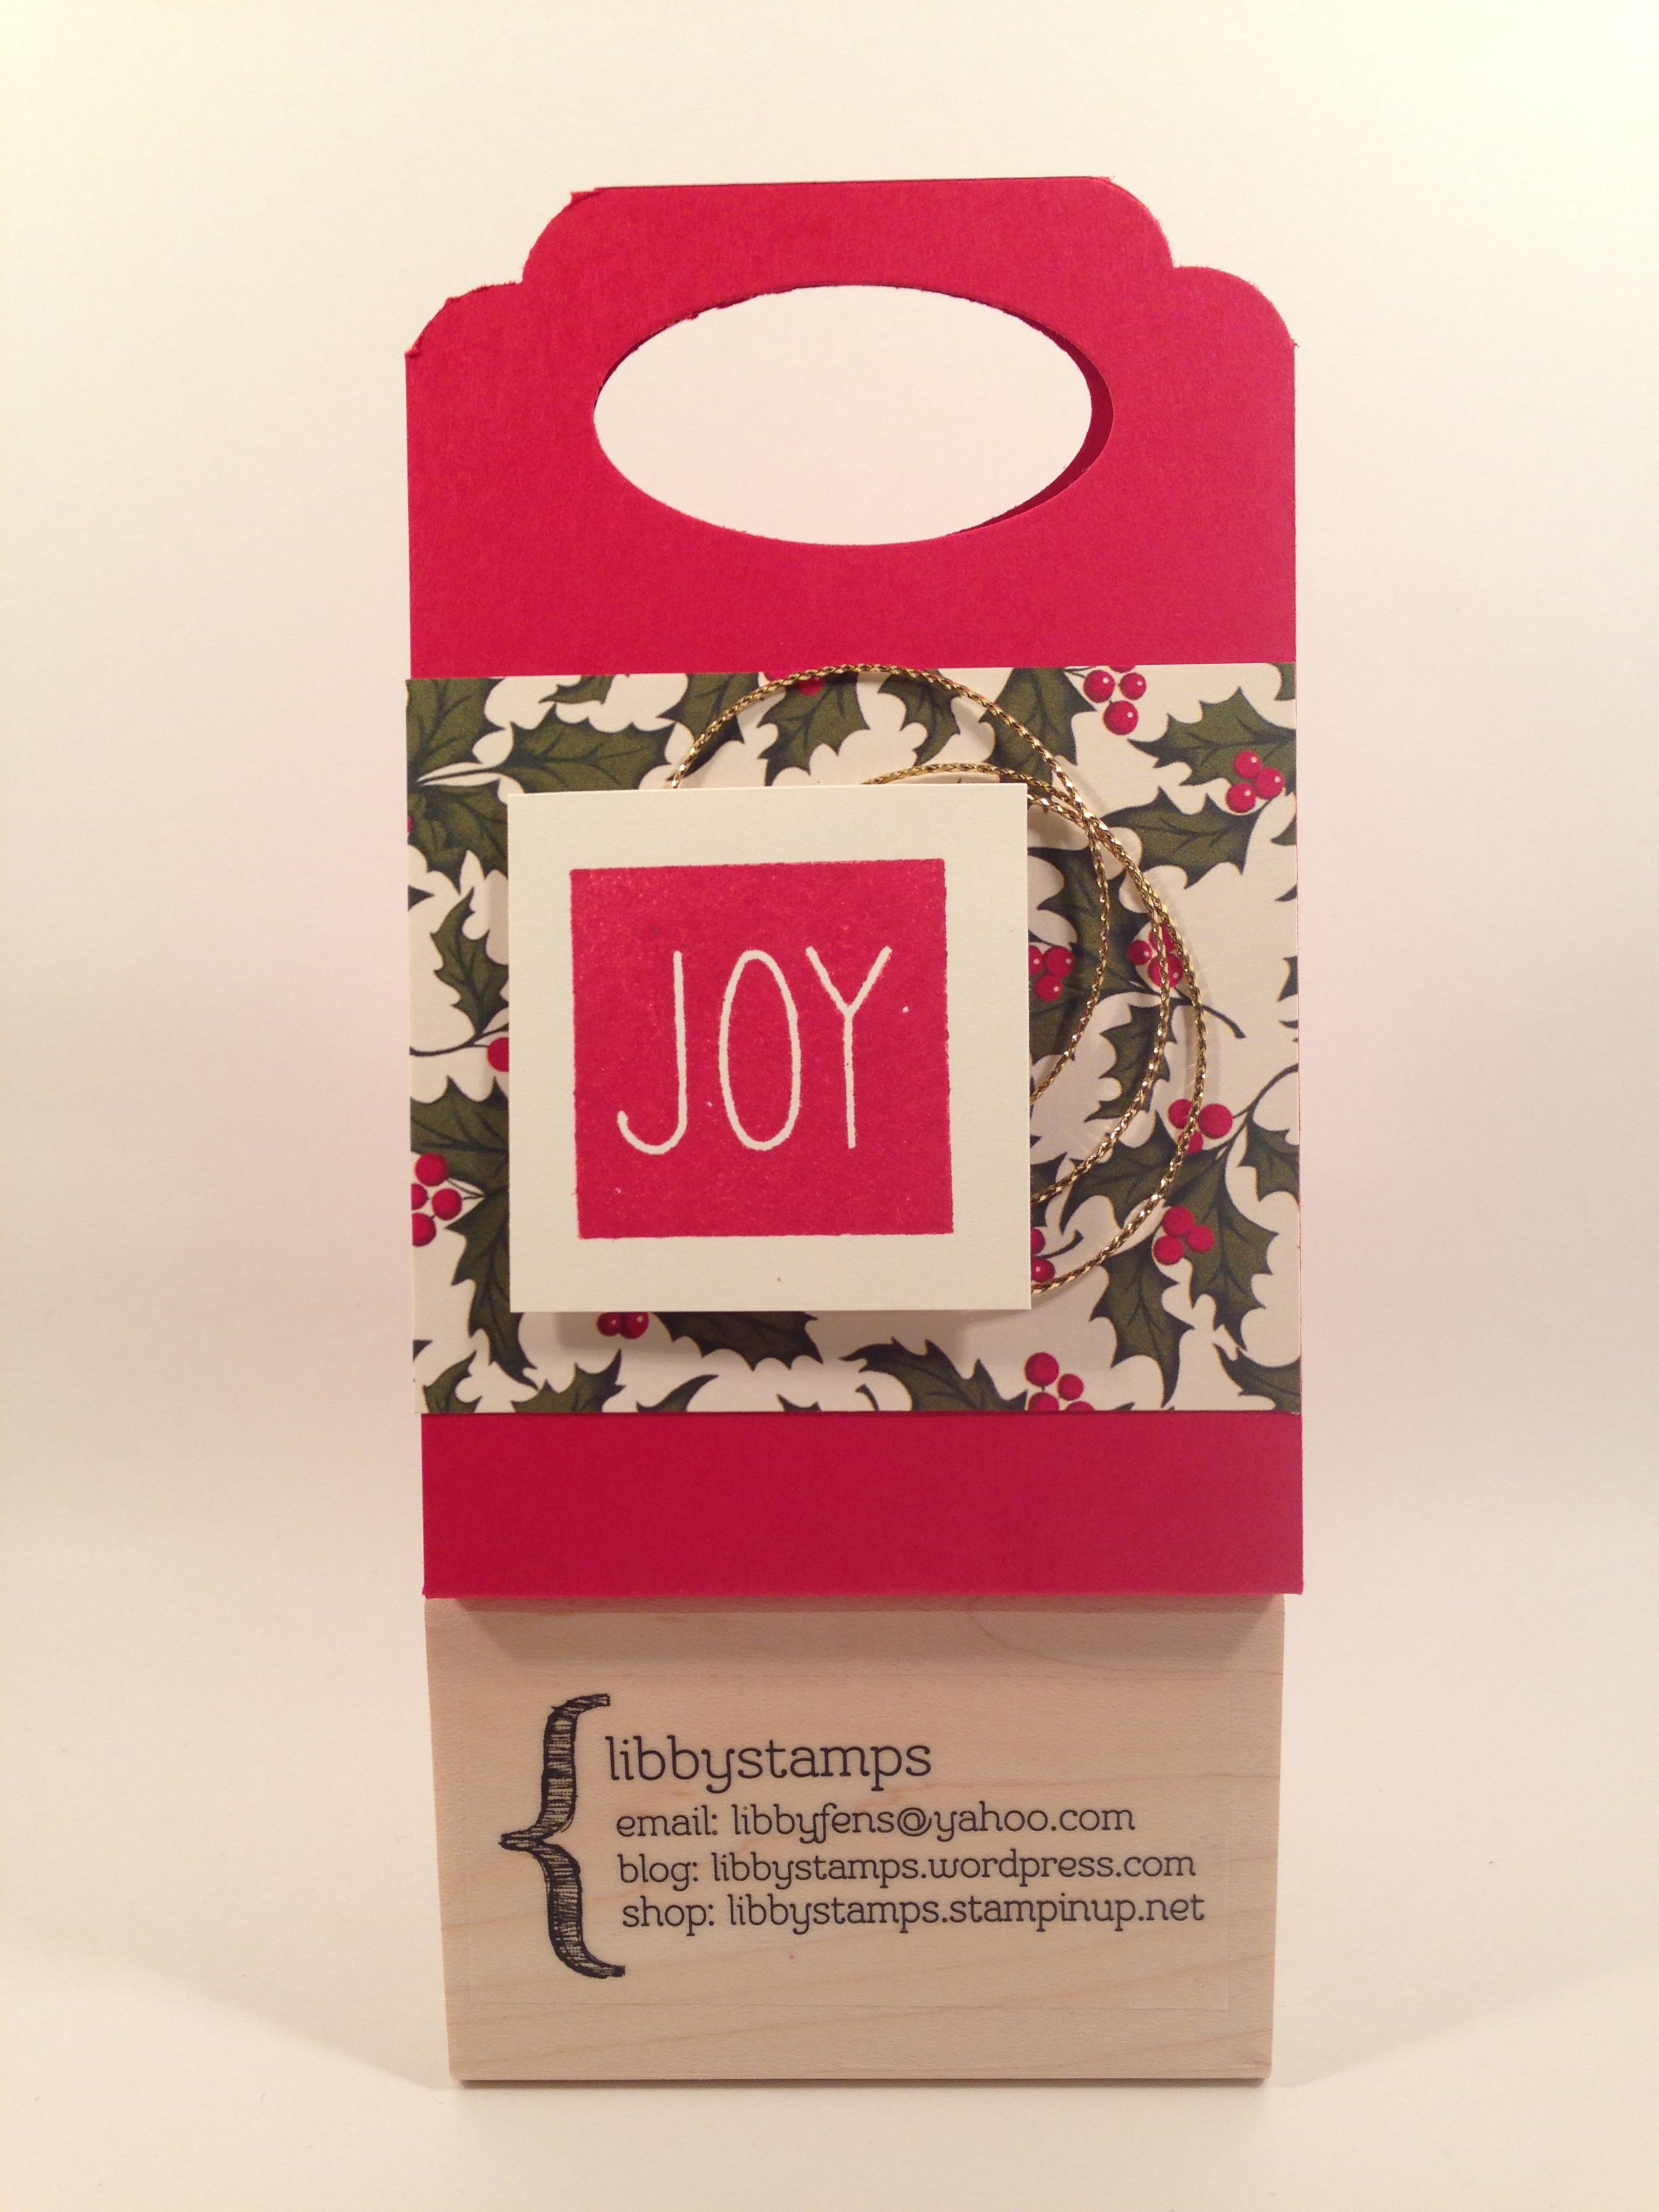 libbystamps, Stampin Up, Mistletoe & Holly Paper Pumpkin Kit, Home for Christmas DSP, Word Window Punch, Curvy Corner Trio Punch, Blogging Friends Blog Hop, gift card holder,